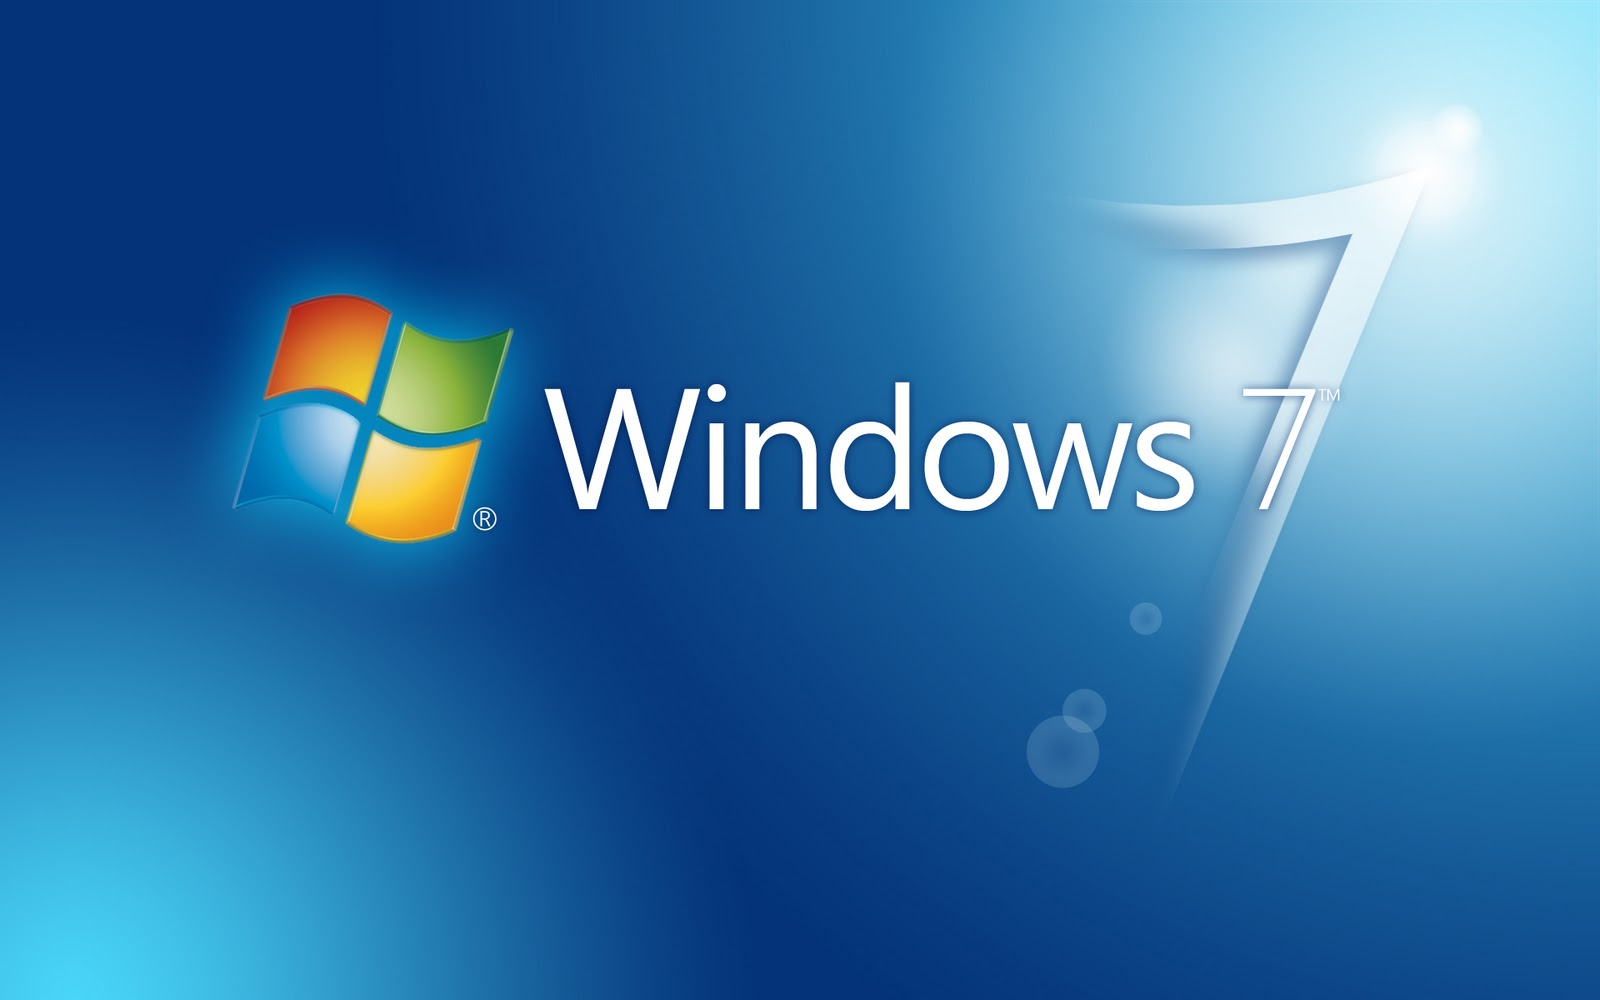 Software Management Tools Aid Windows 7 Migration